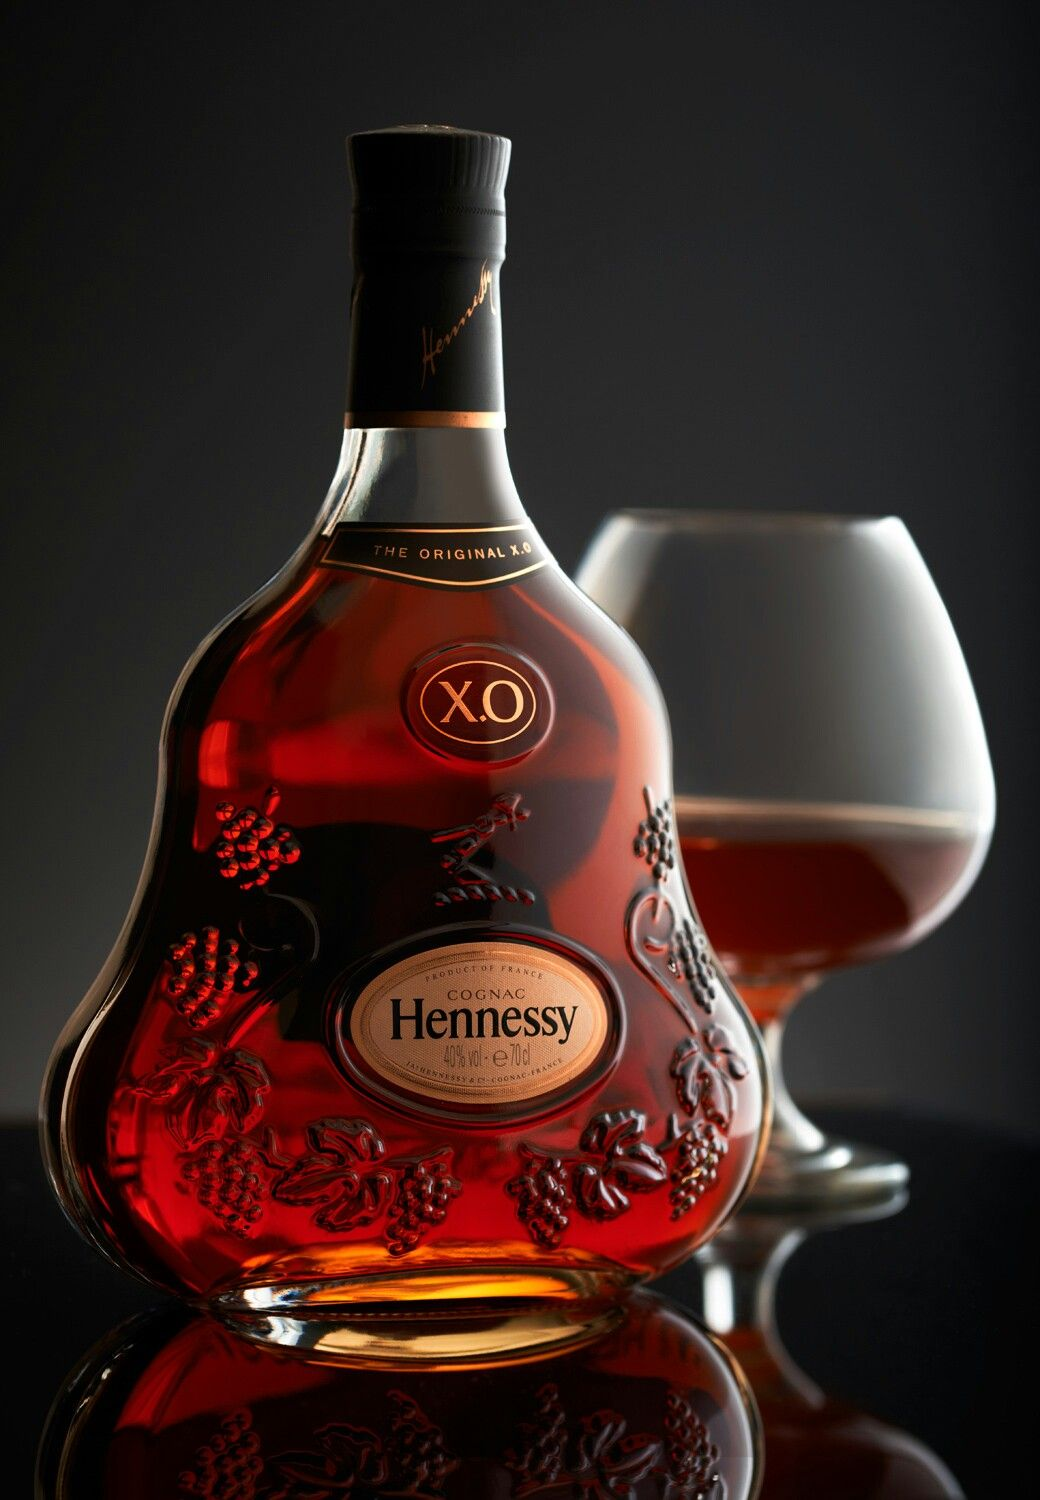 Hennessy Xo Liquor Bottles Alcoholic Drinks Food Photography Background